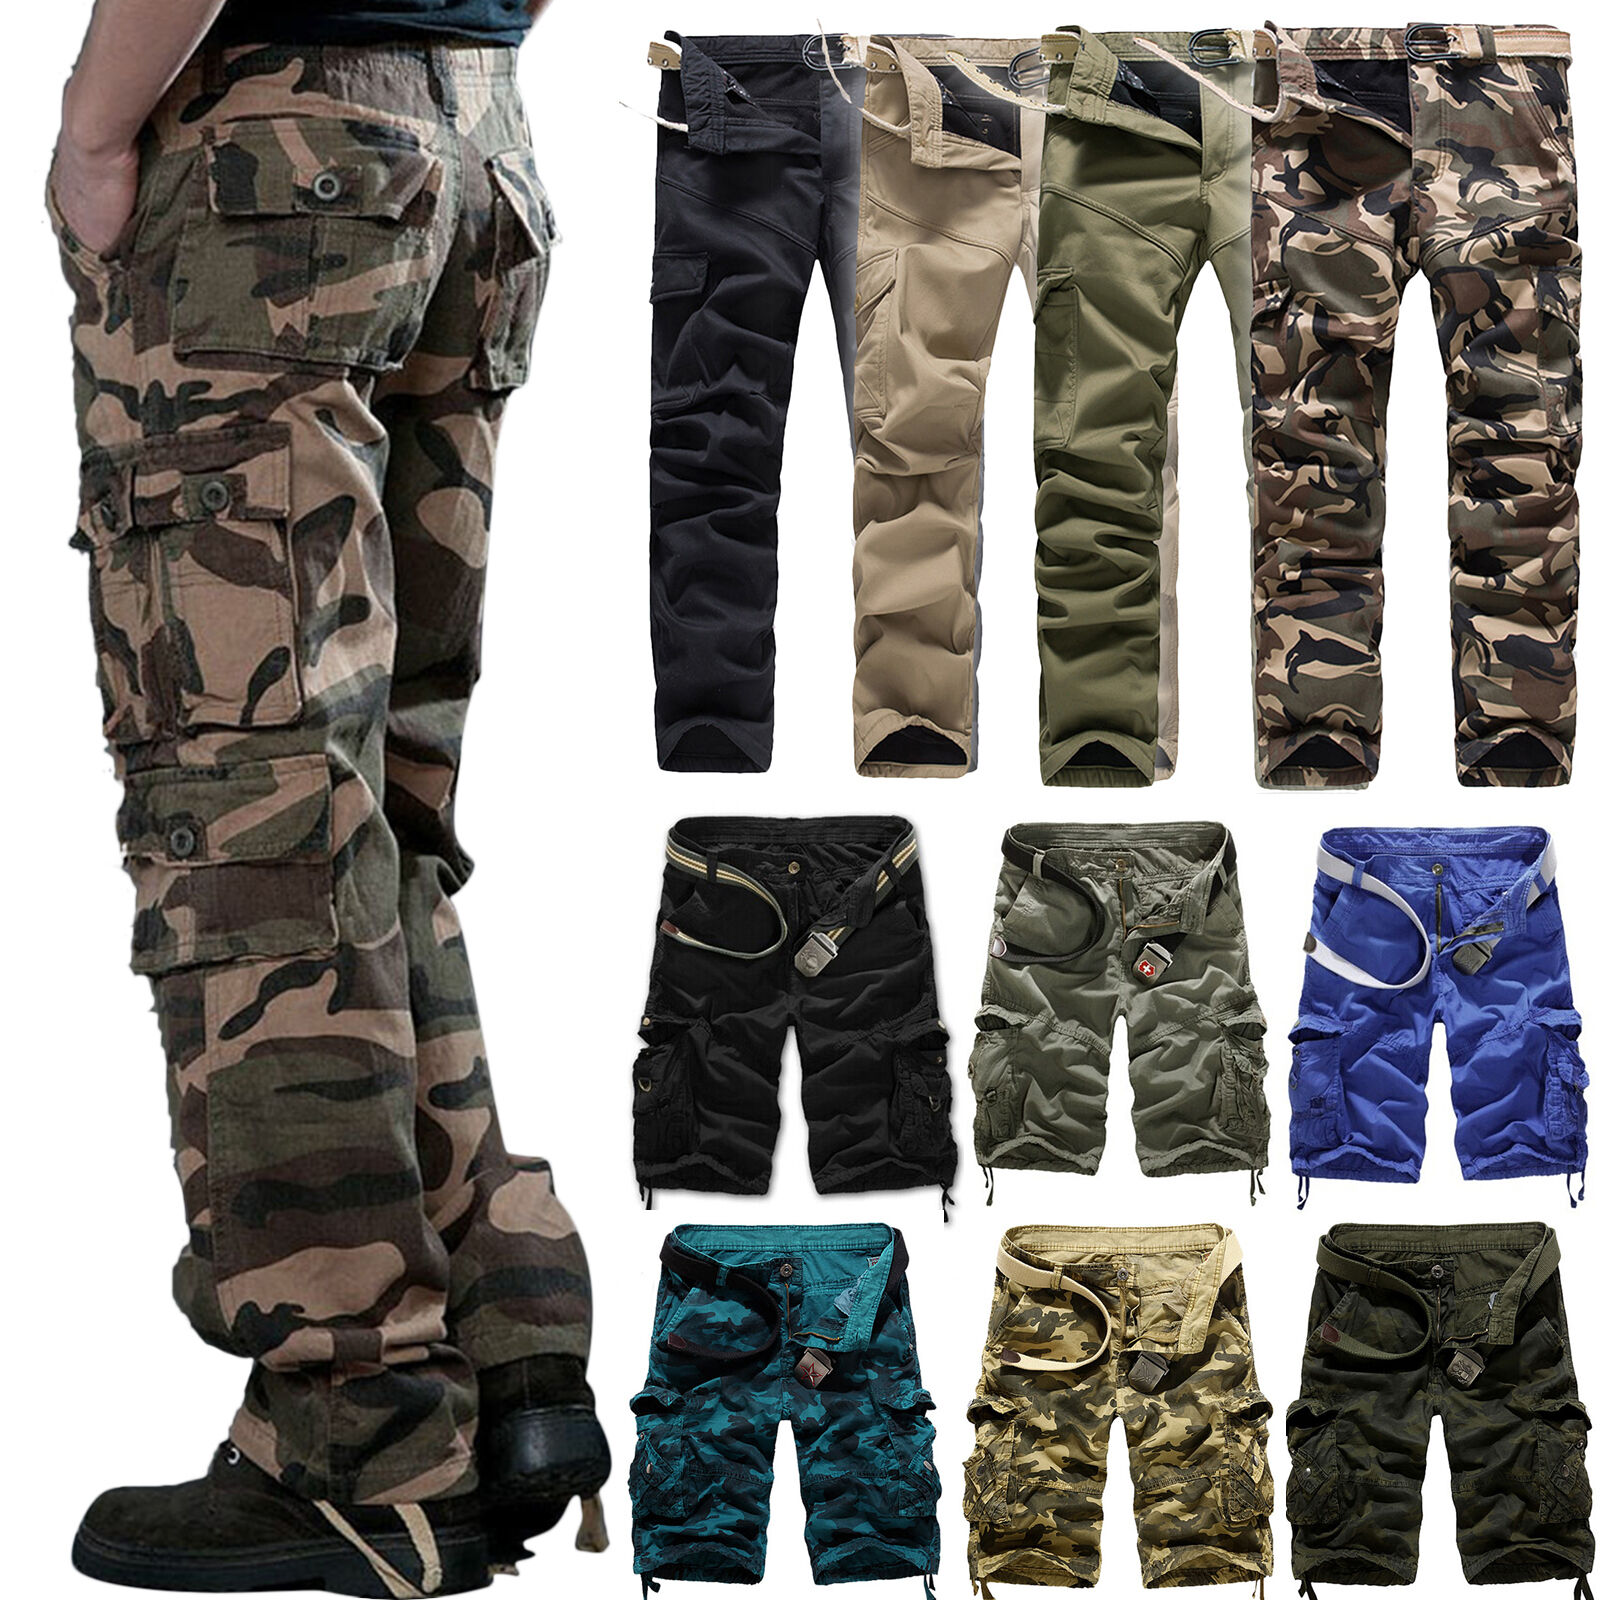 Men's Military Army Combat Trousers Tactical Work Hiking Cam